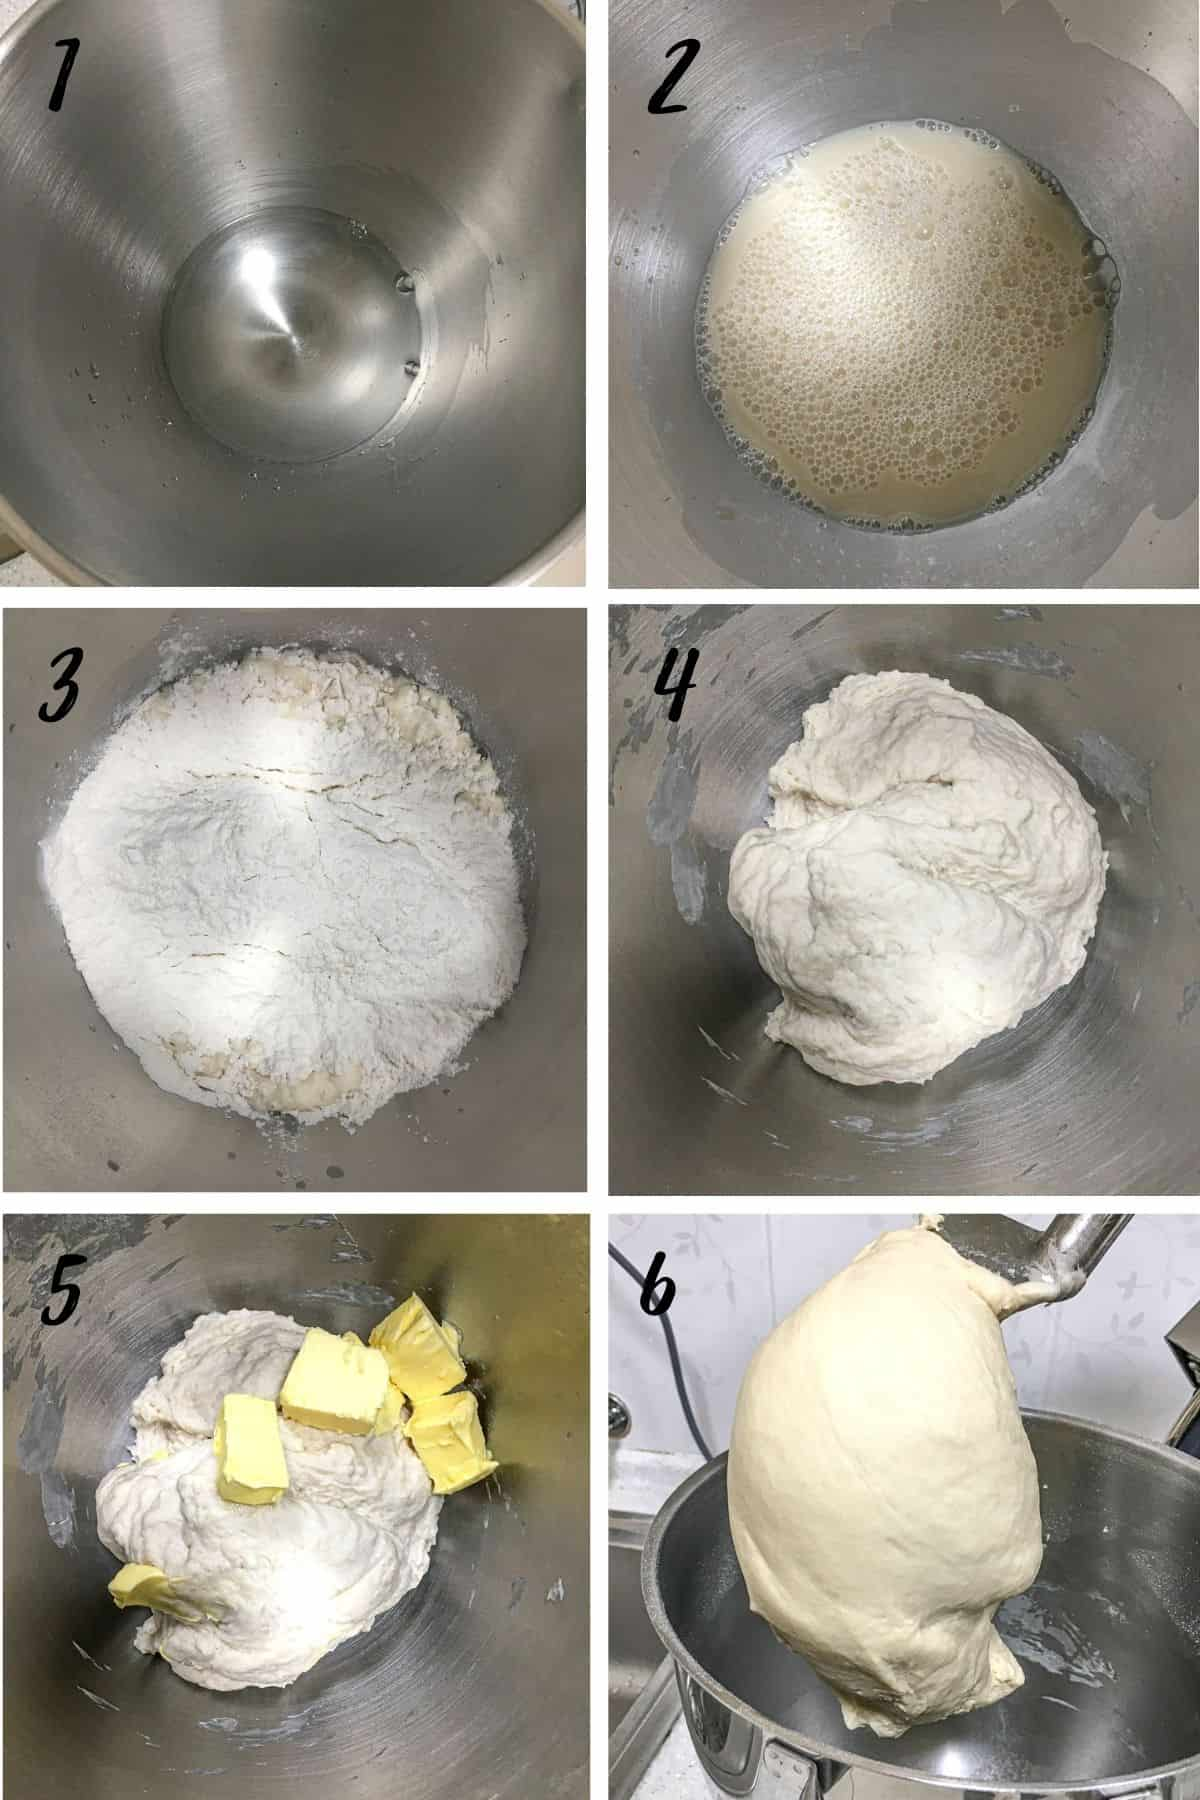 A poster of 6 images showing how to knead homemade white bread dough